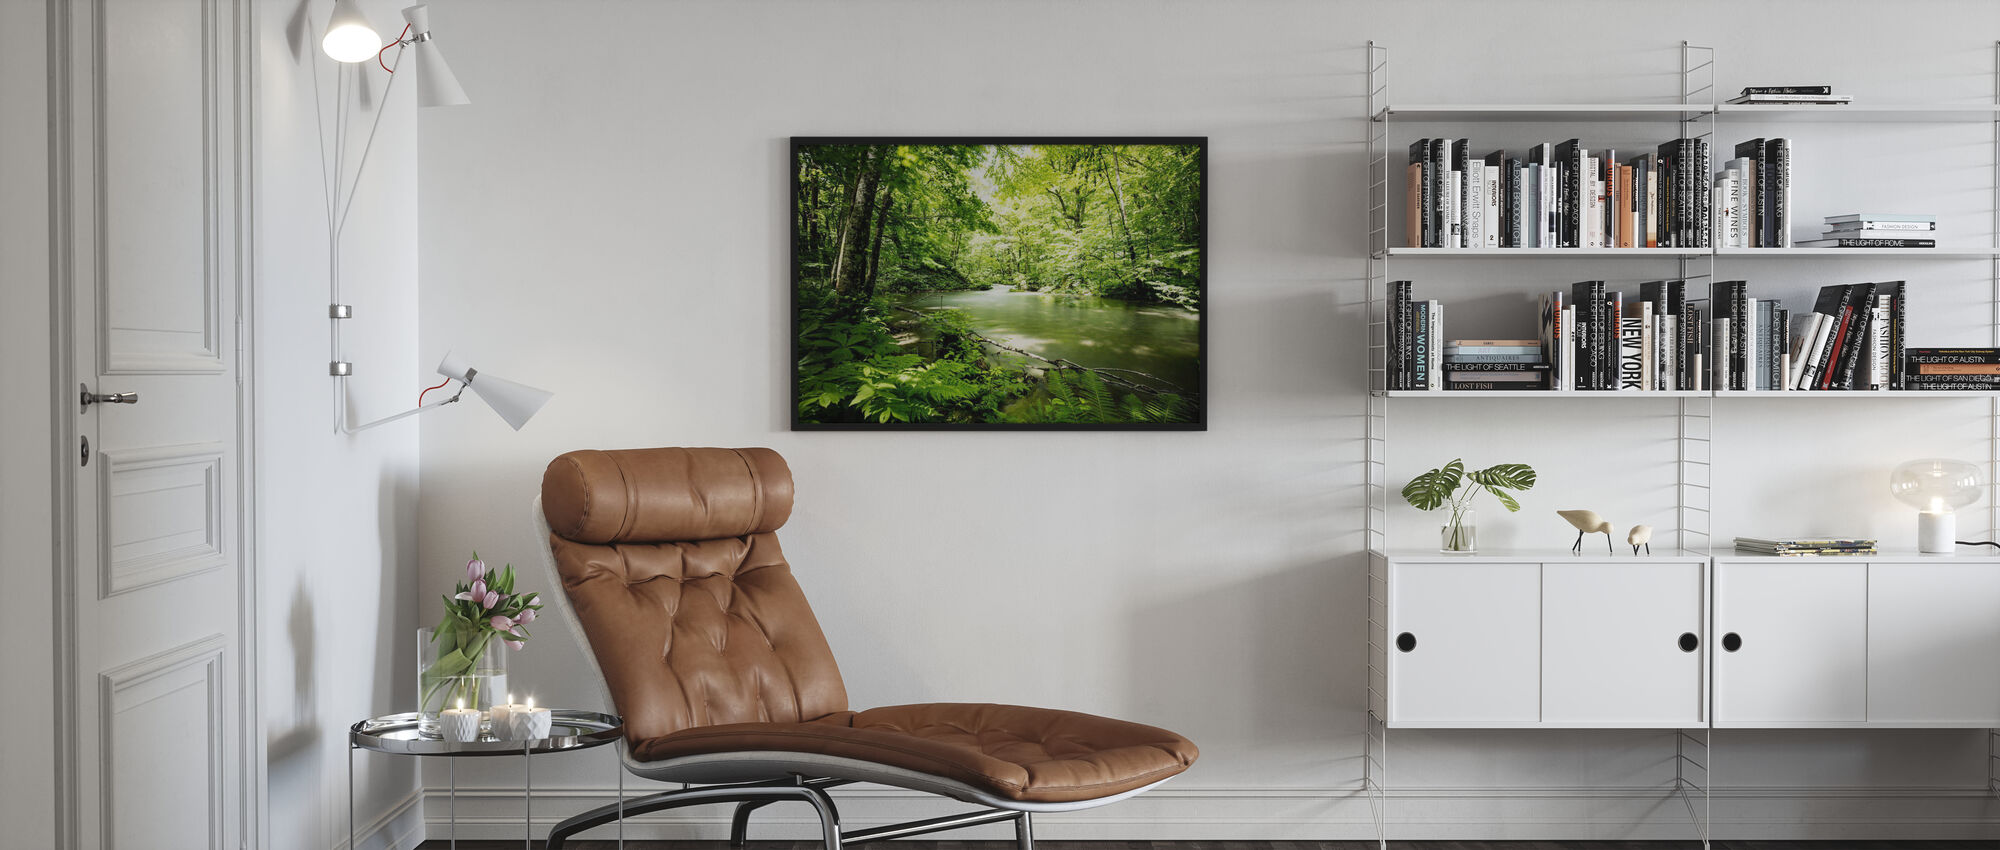 Deep into the Forest - Poster - Living Room